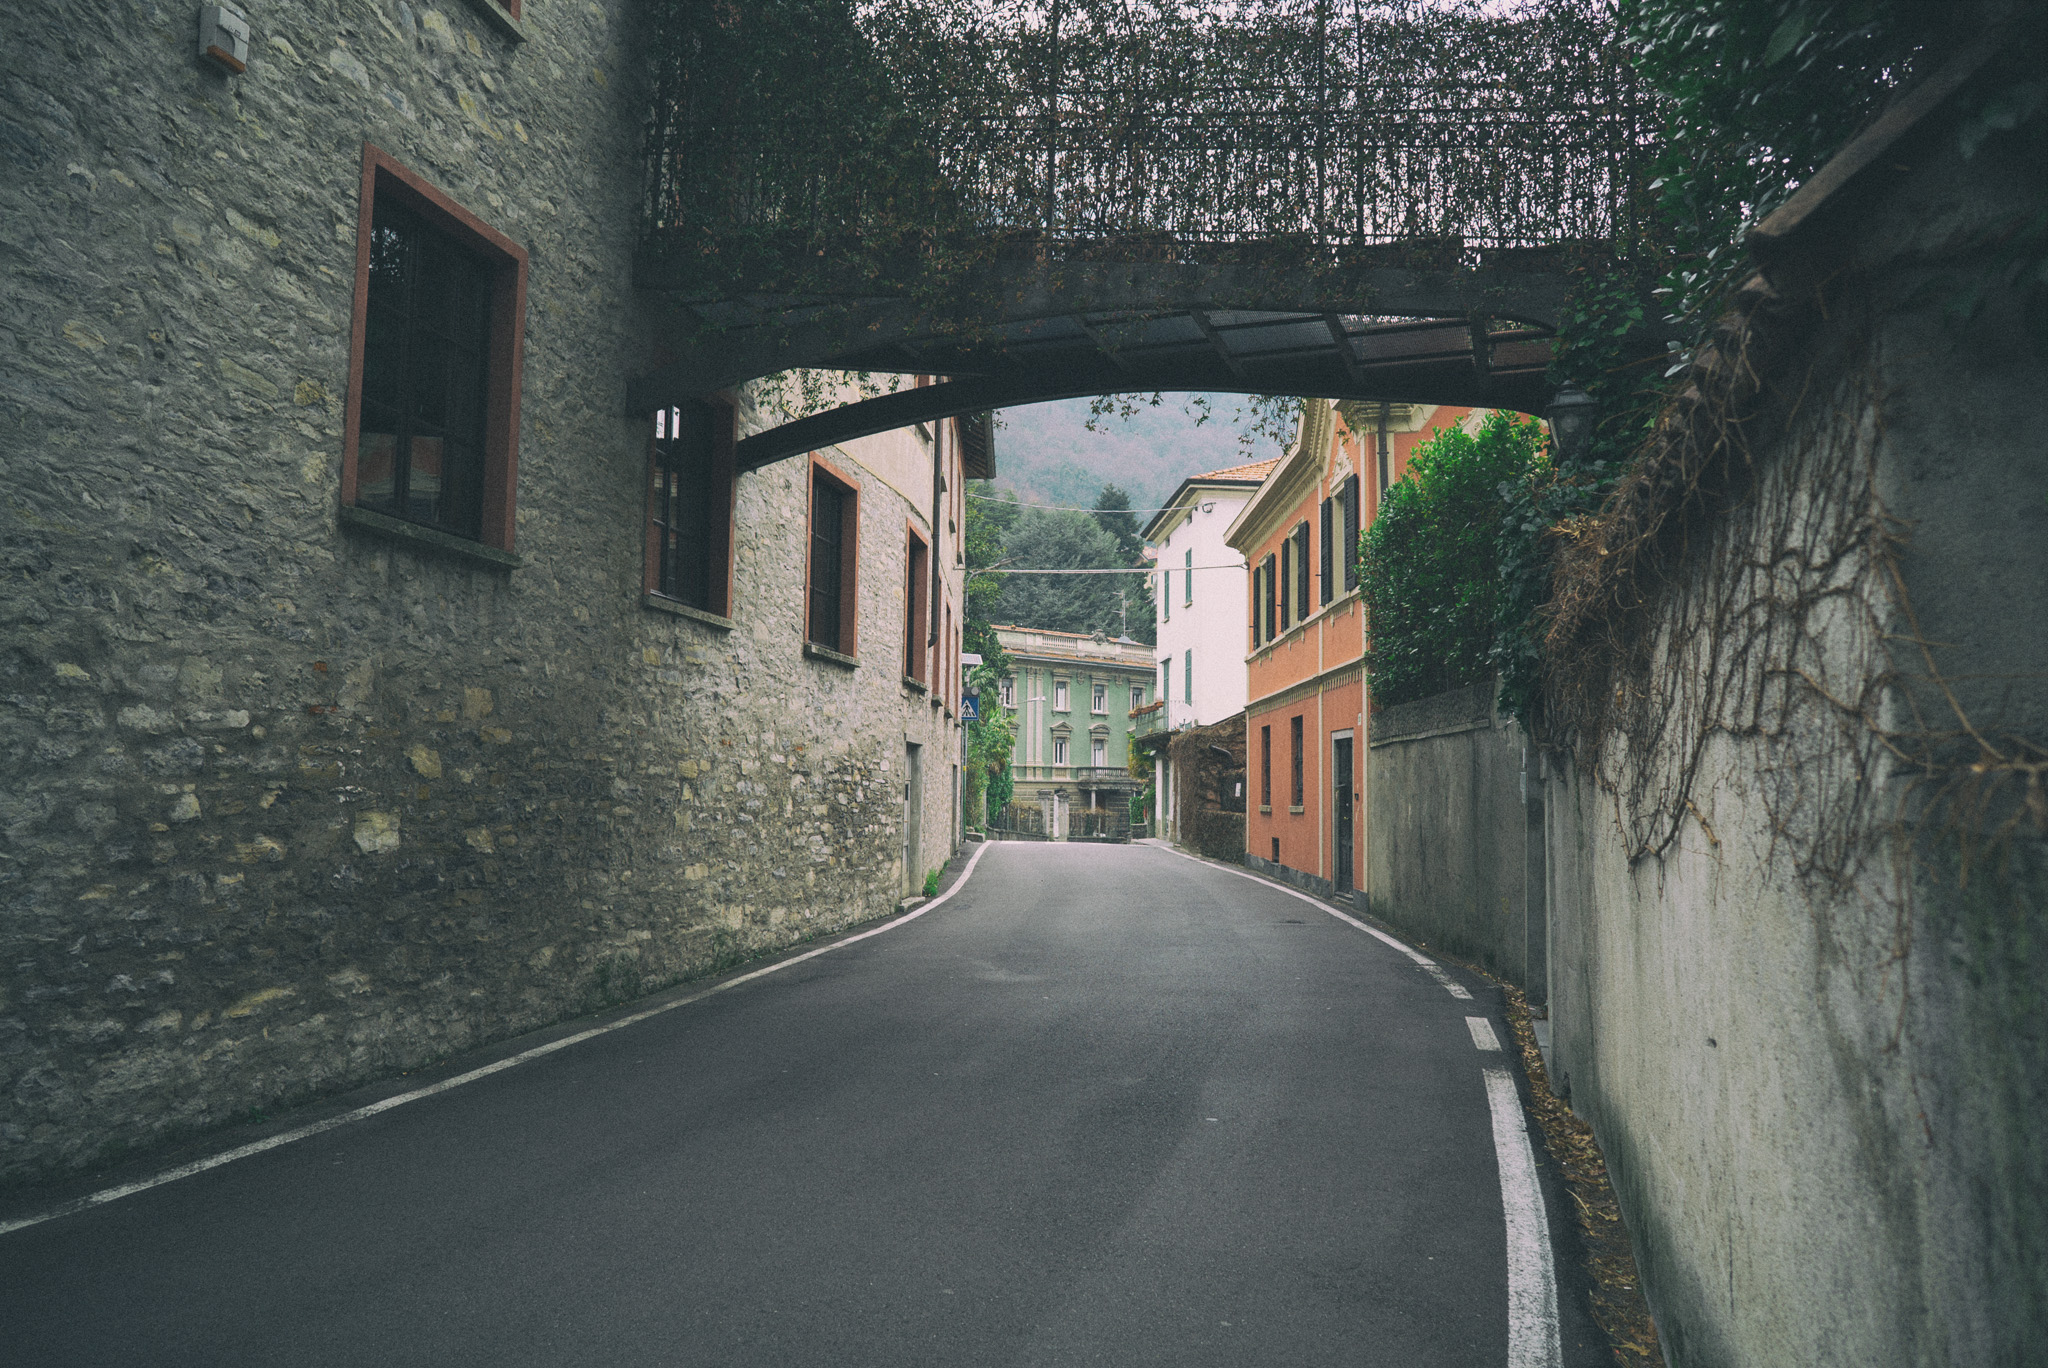 One of the many picturesque streets near Lake Como, Italy. f/4.0, shutter 1/60th, ISO 100.